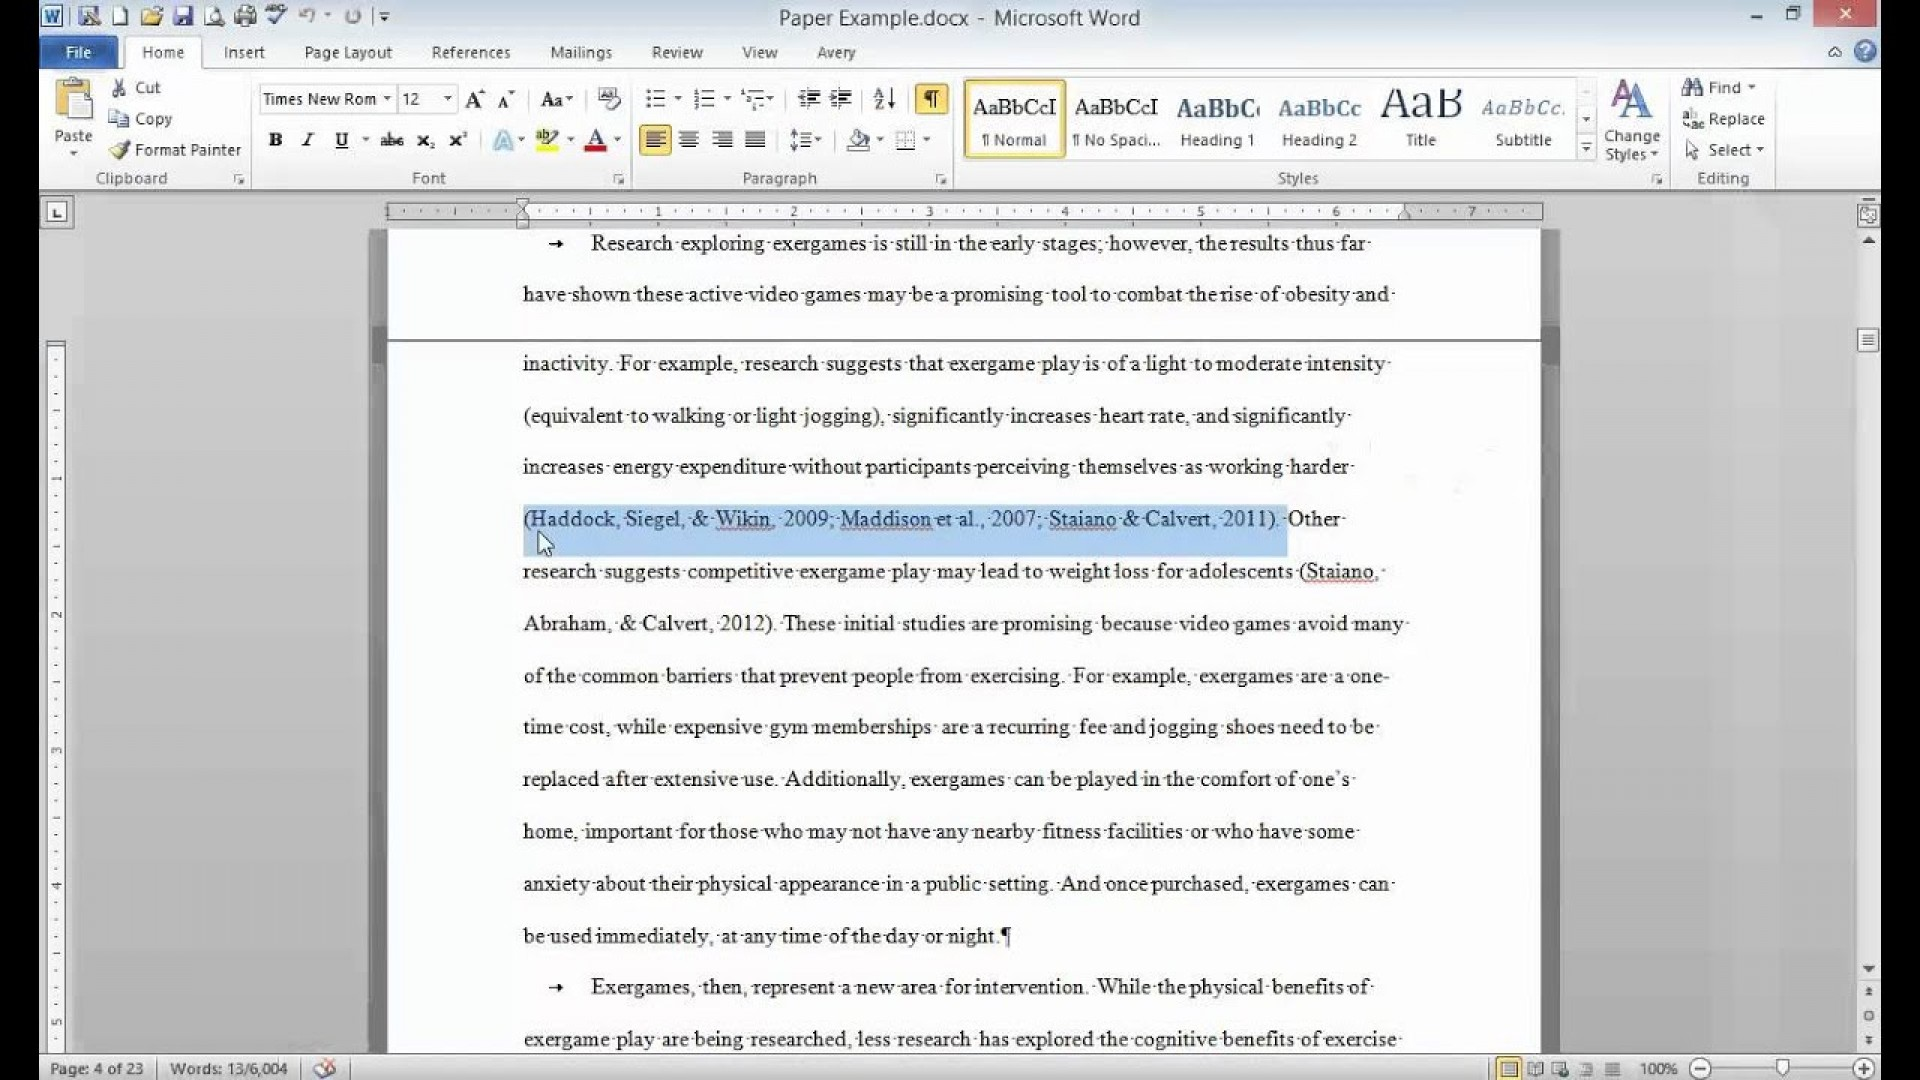 006 Maxresdefault How To Cite Book In Essay Formidable Sources Within A Paper Apa Style And Page Number 1920